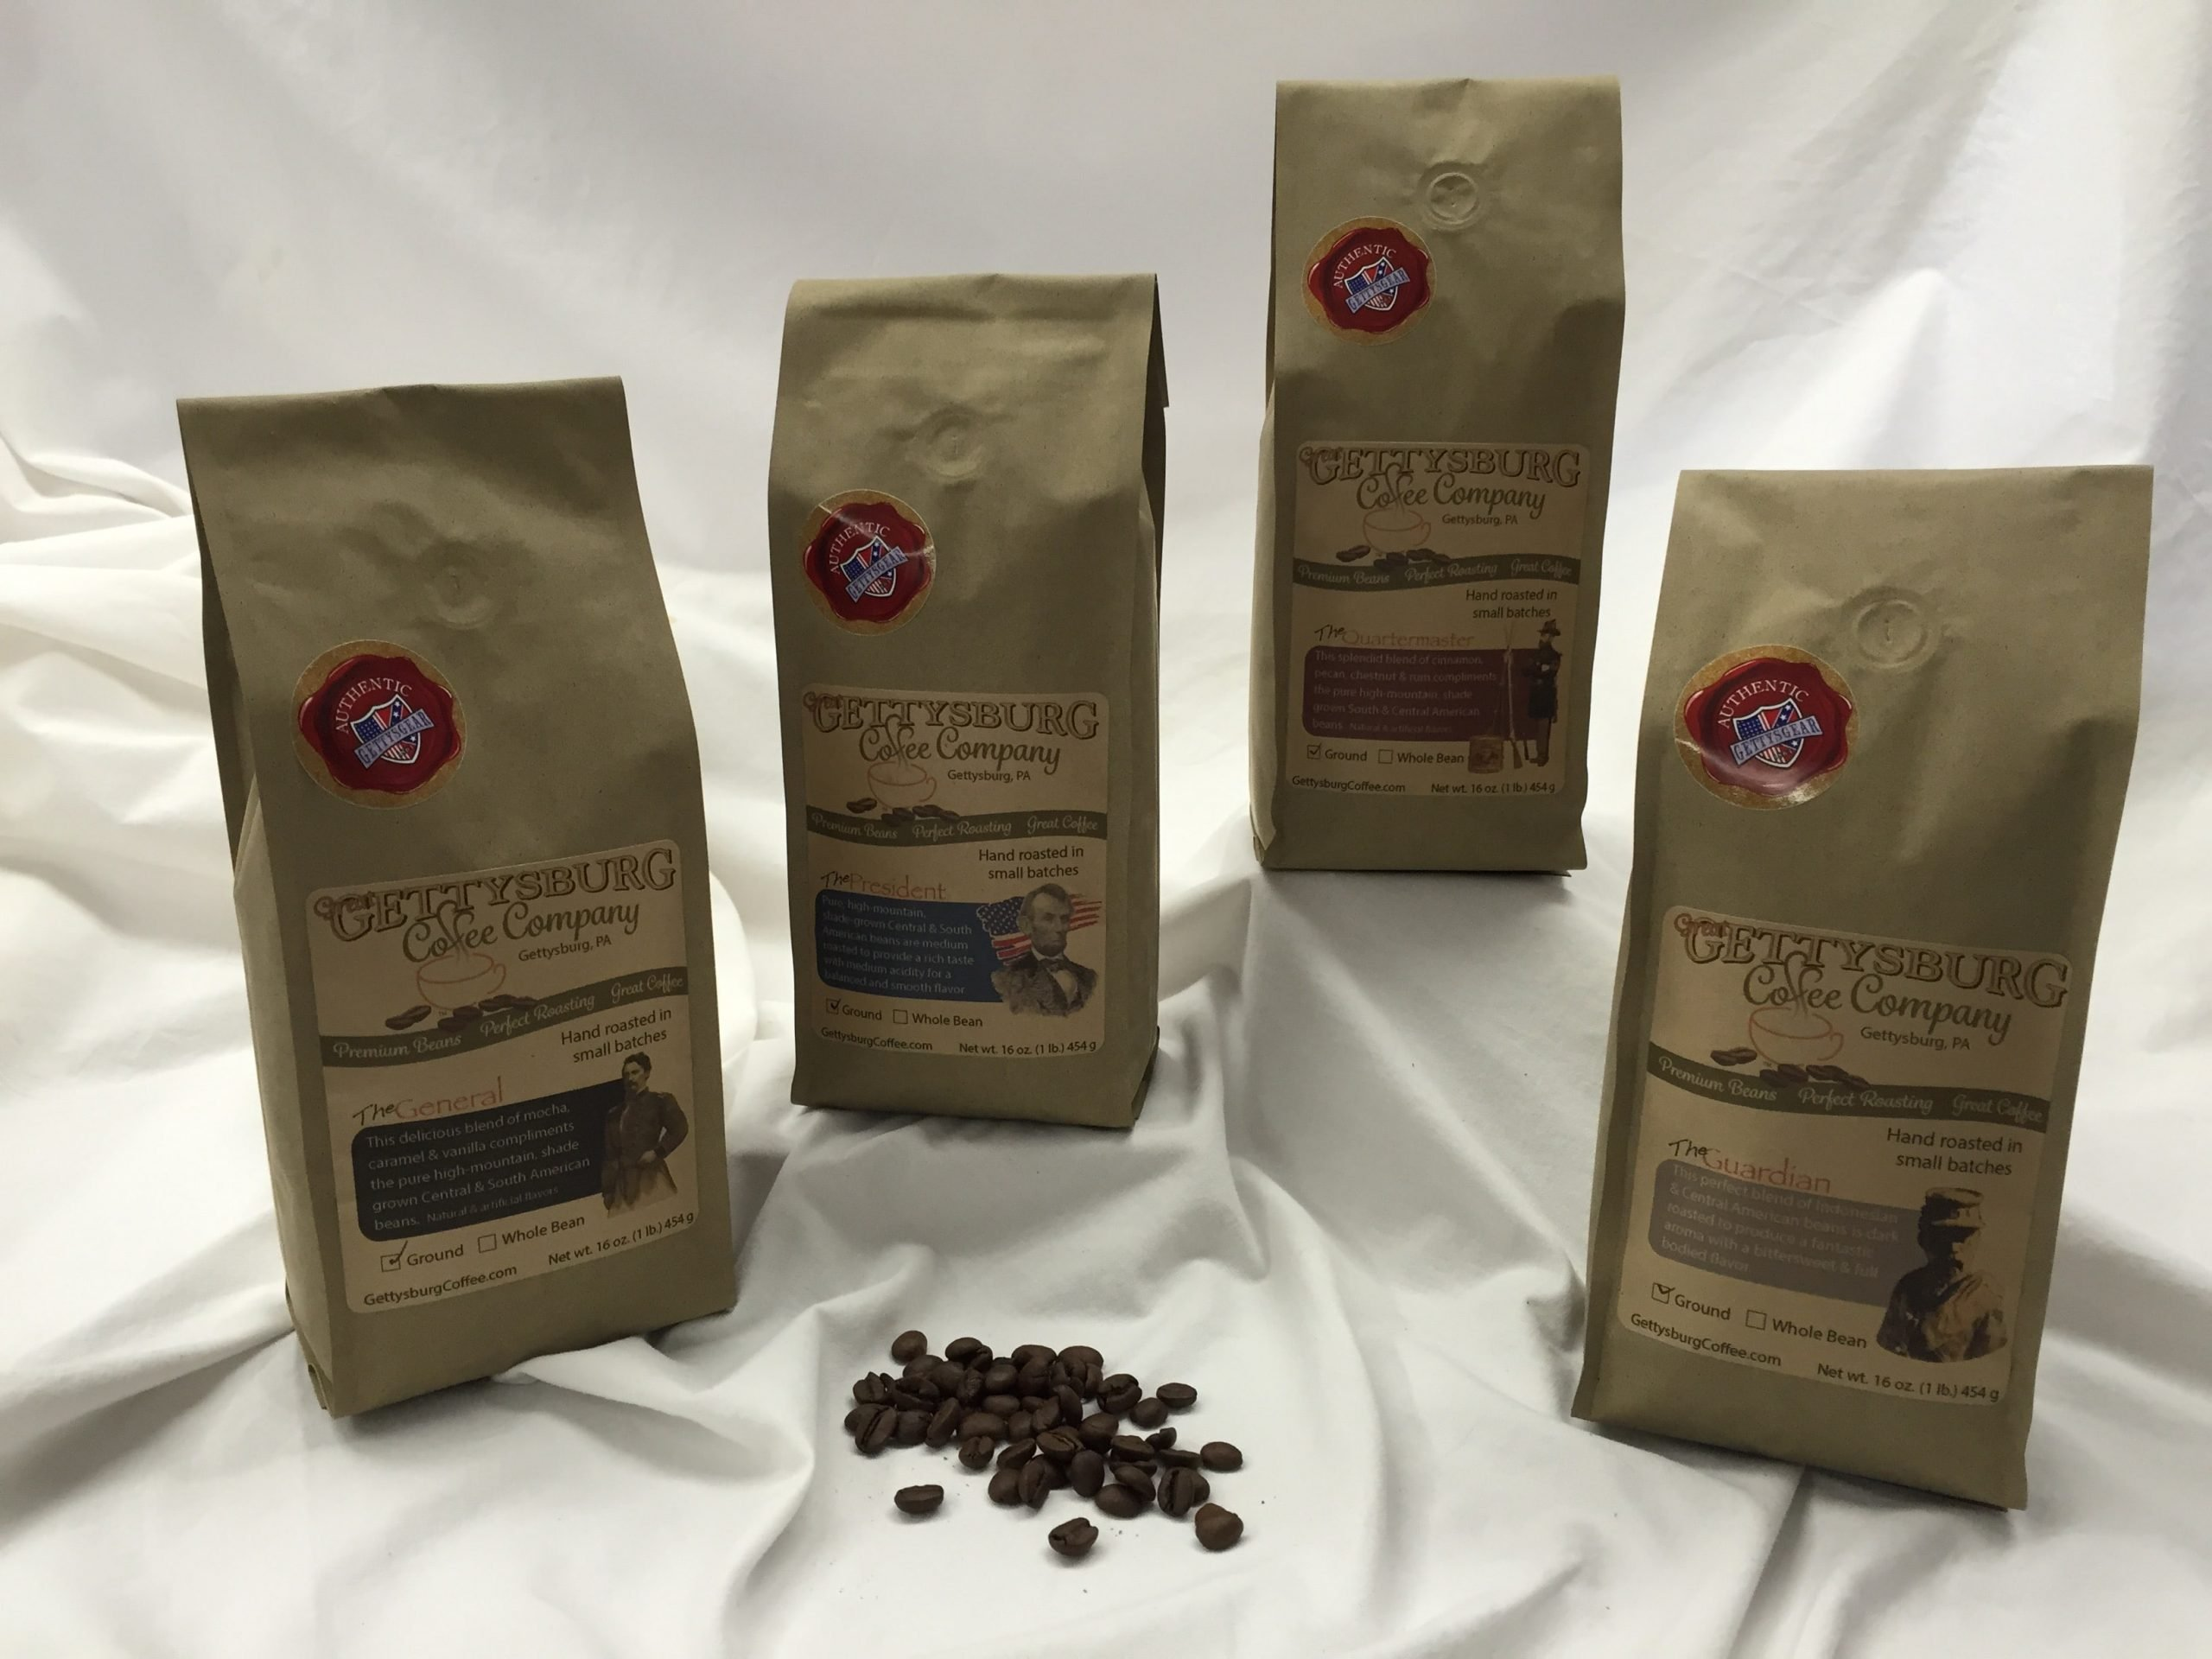 Salute America This Holiday Season with Gourmet Coffee Blends Roasted in Historic Gettysburg